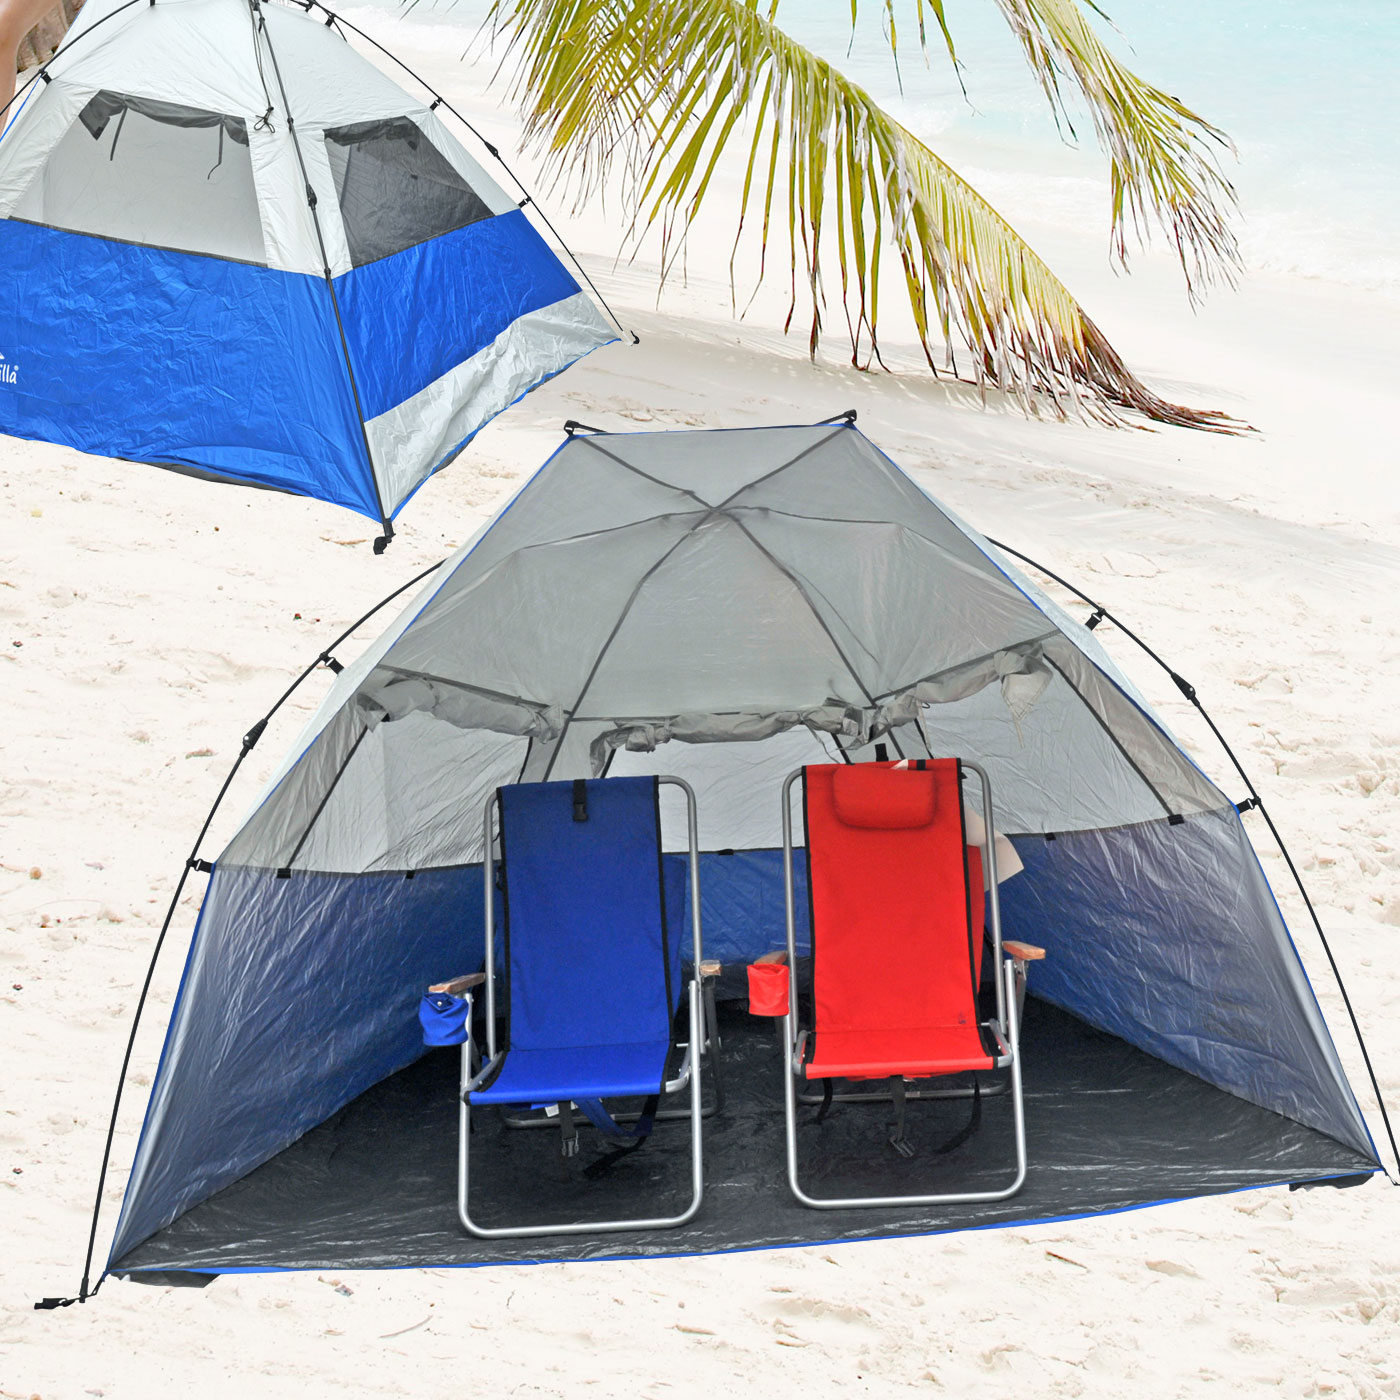 Portable Pop Up Shelters : Deluxe instant popup beach tent shelter cabana upf